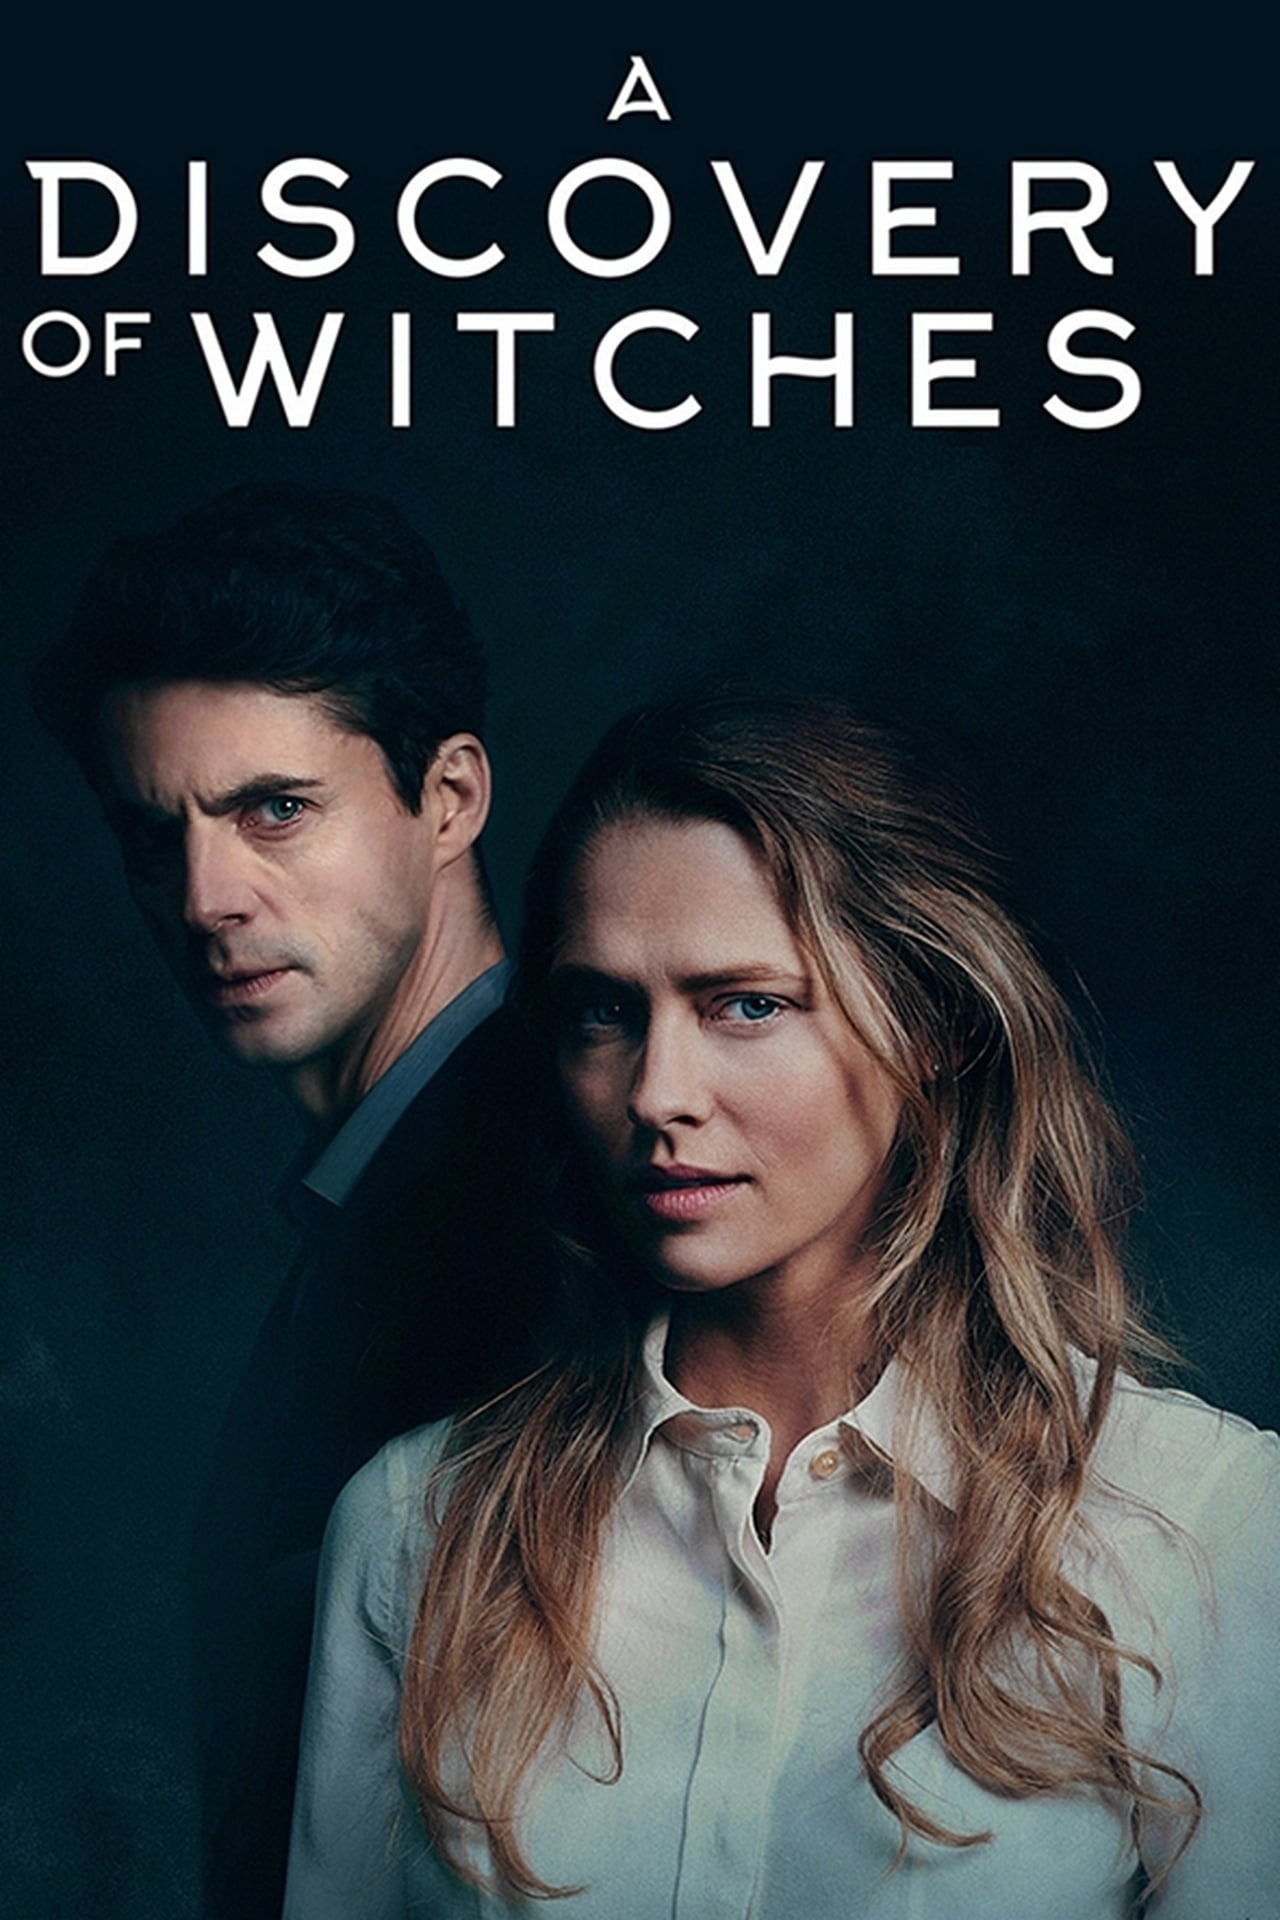 A Discovery of Witches (season 2)